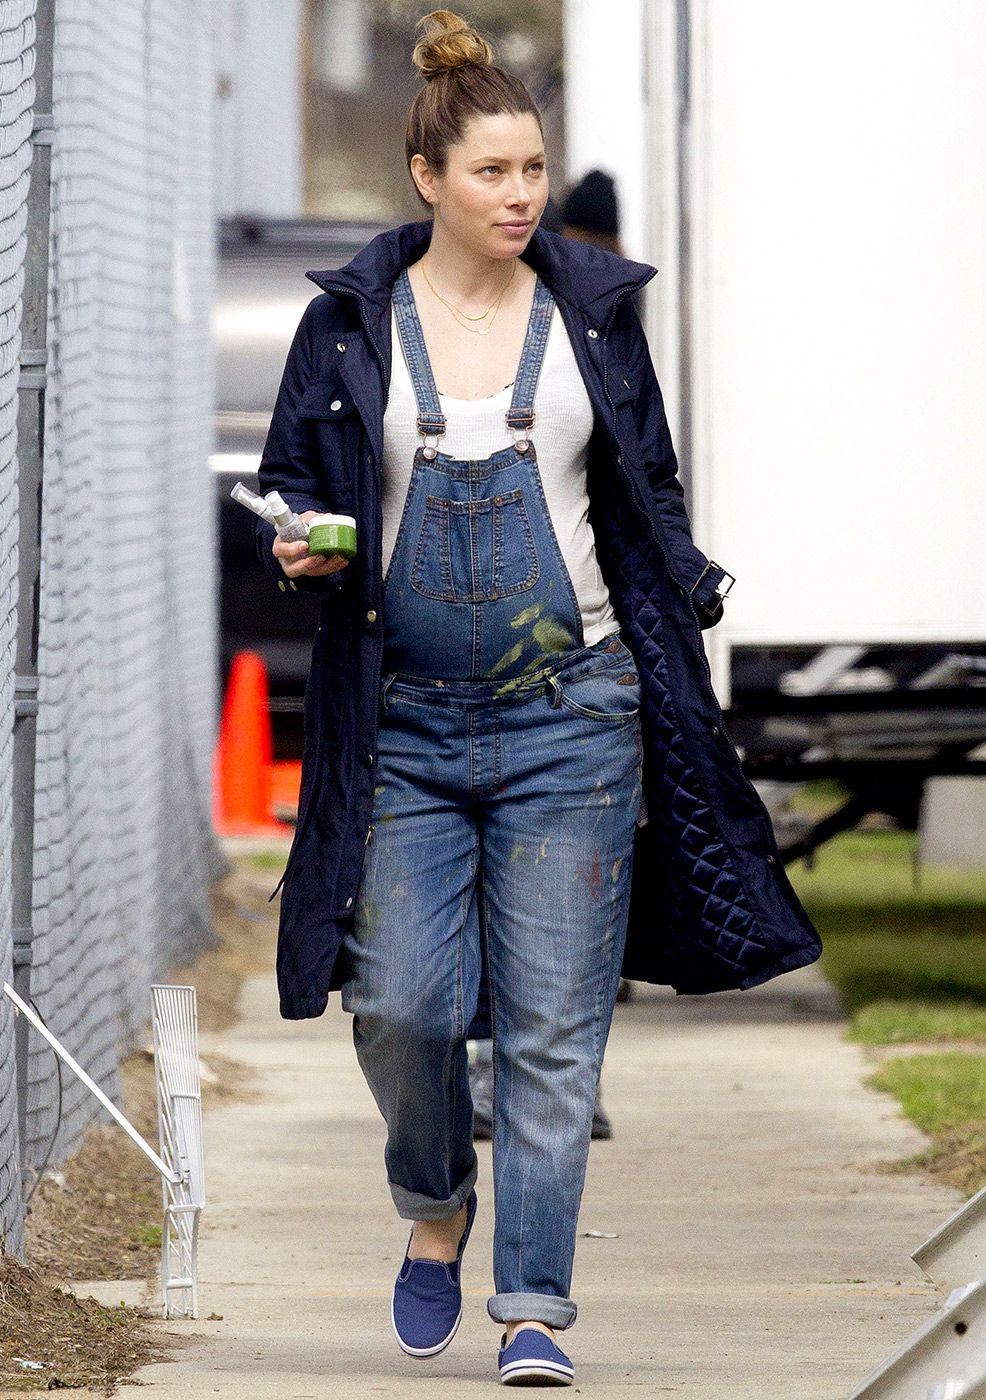 Stylish Mama! Jessica Biel Looks Fab in Maternity Overalls ...